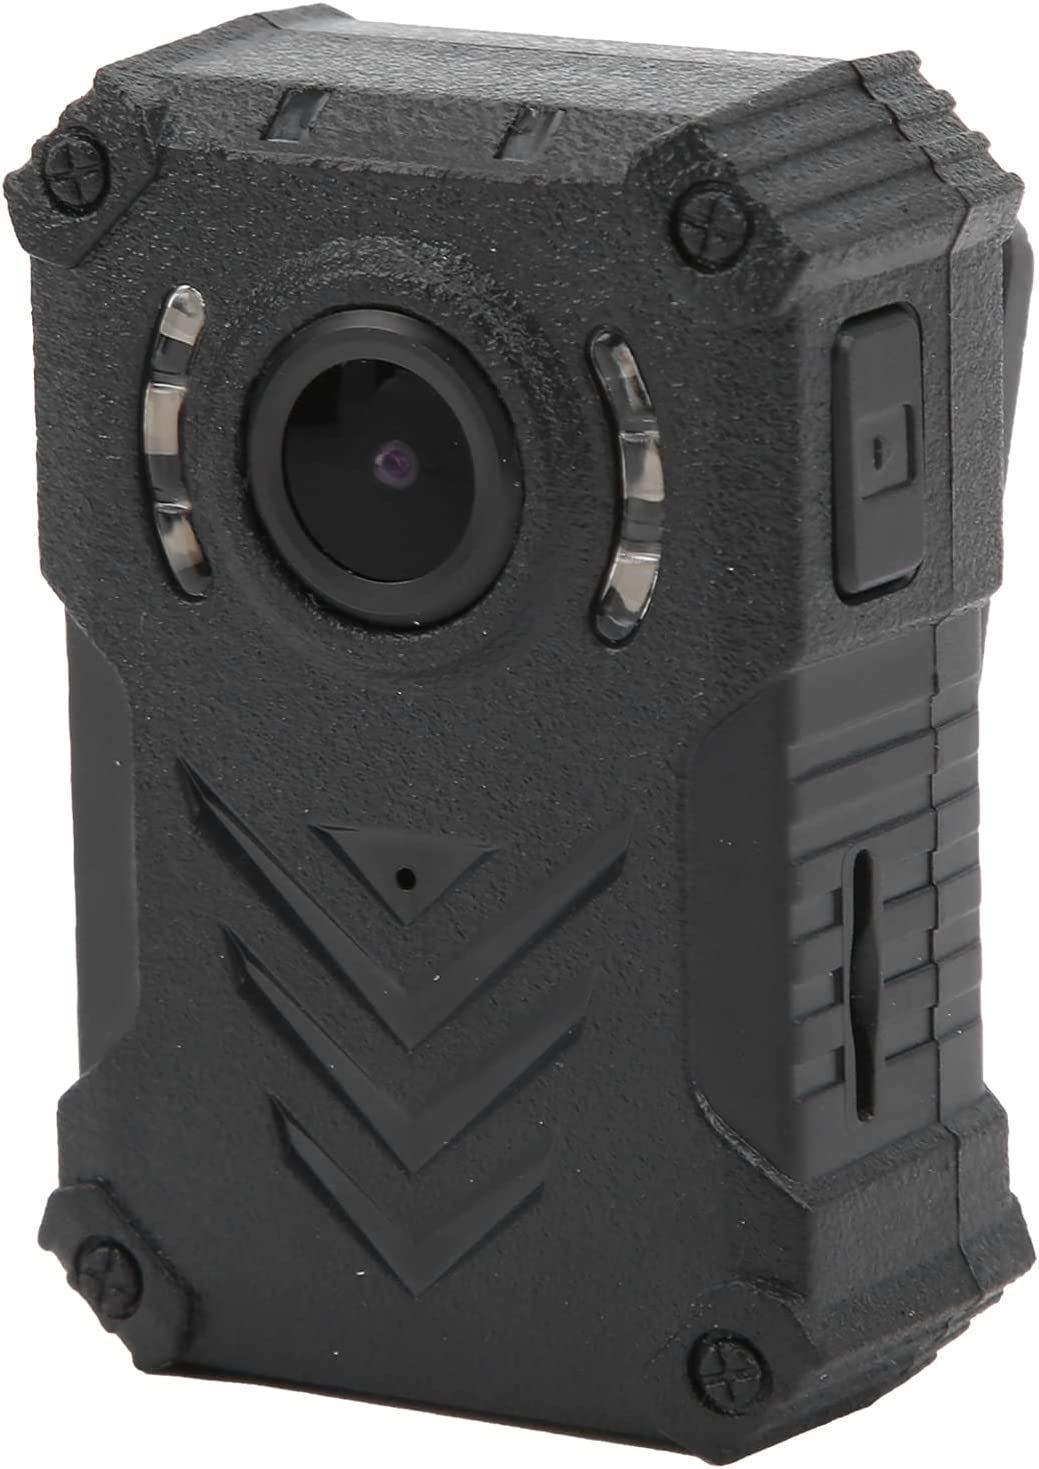 Mini Body Camera Video Recorder 1080P Waterproof Portable Body Worn Camera with Night Vision and 150° Wide Angle for Law Enforcement, Security Guard, Home